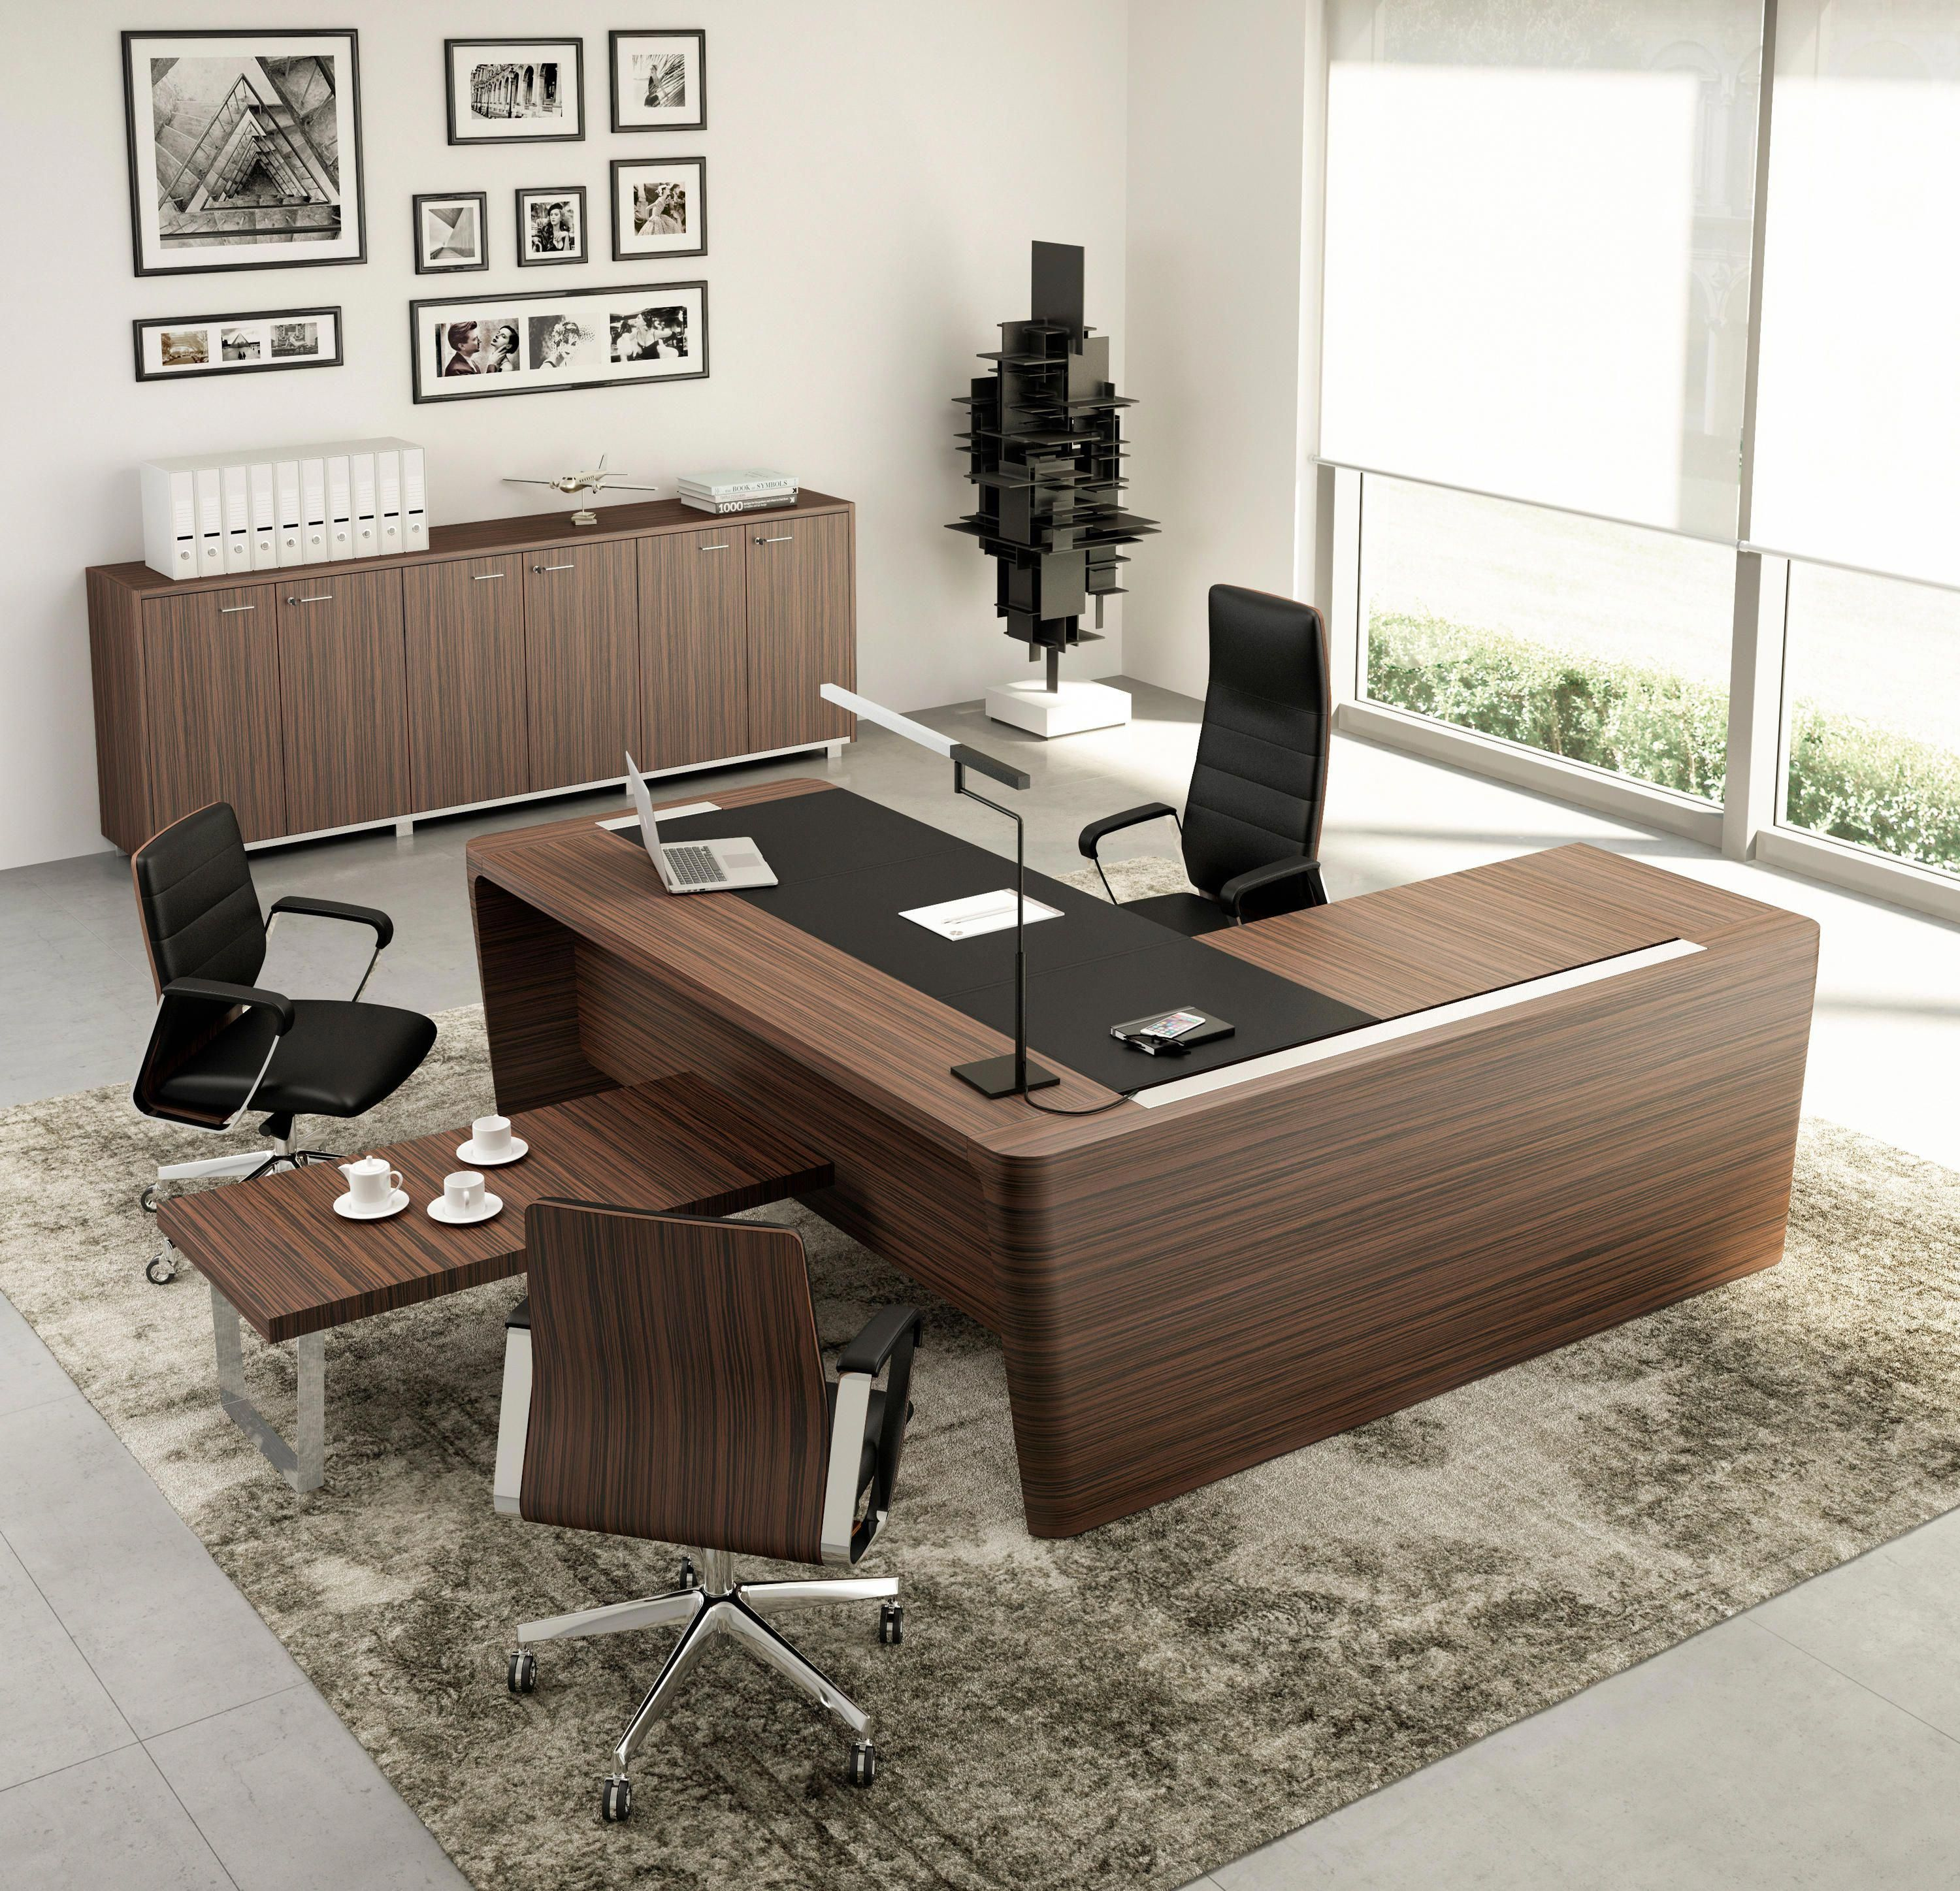 X10 Designer Executive Desks From The Quadrifoglio Group All Information Hig Office Furniture Design Contemporary Office Furniture Large Office Furniture